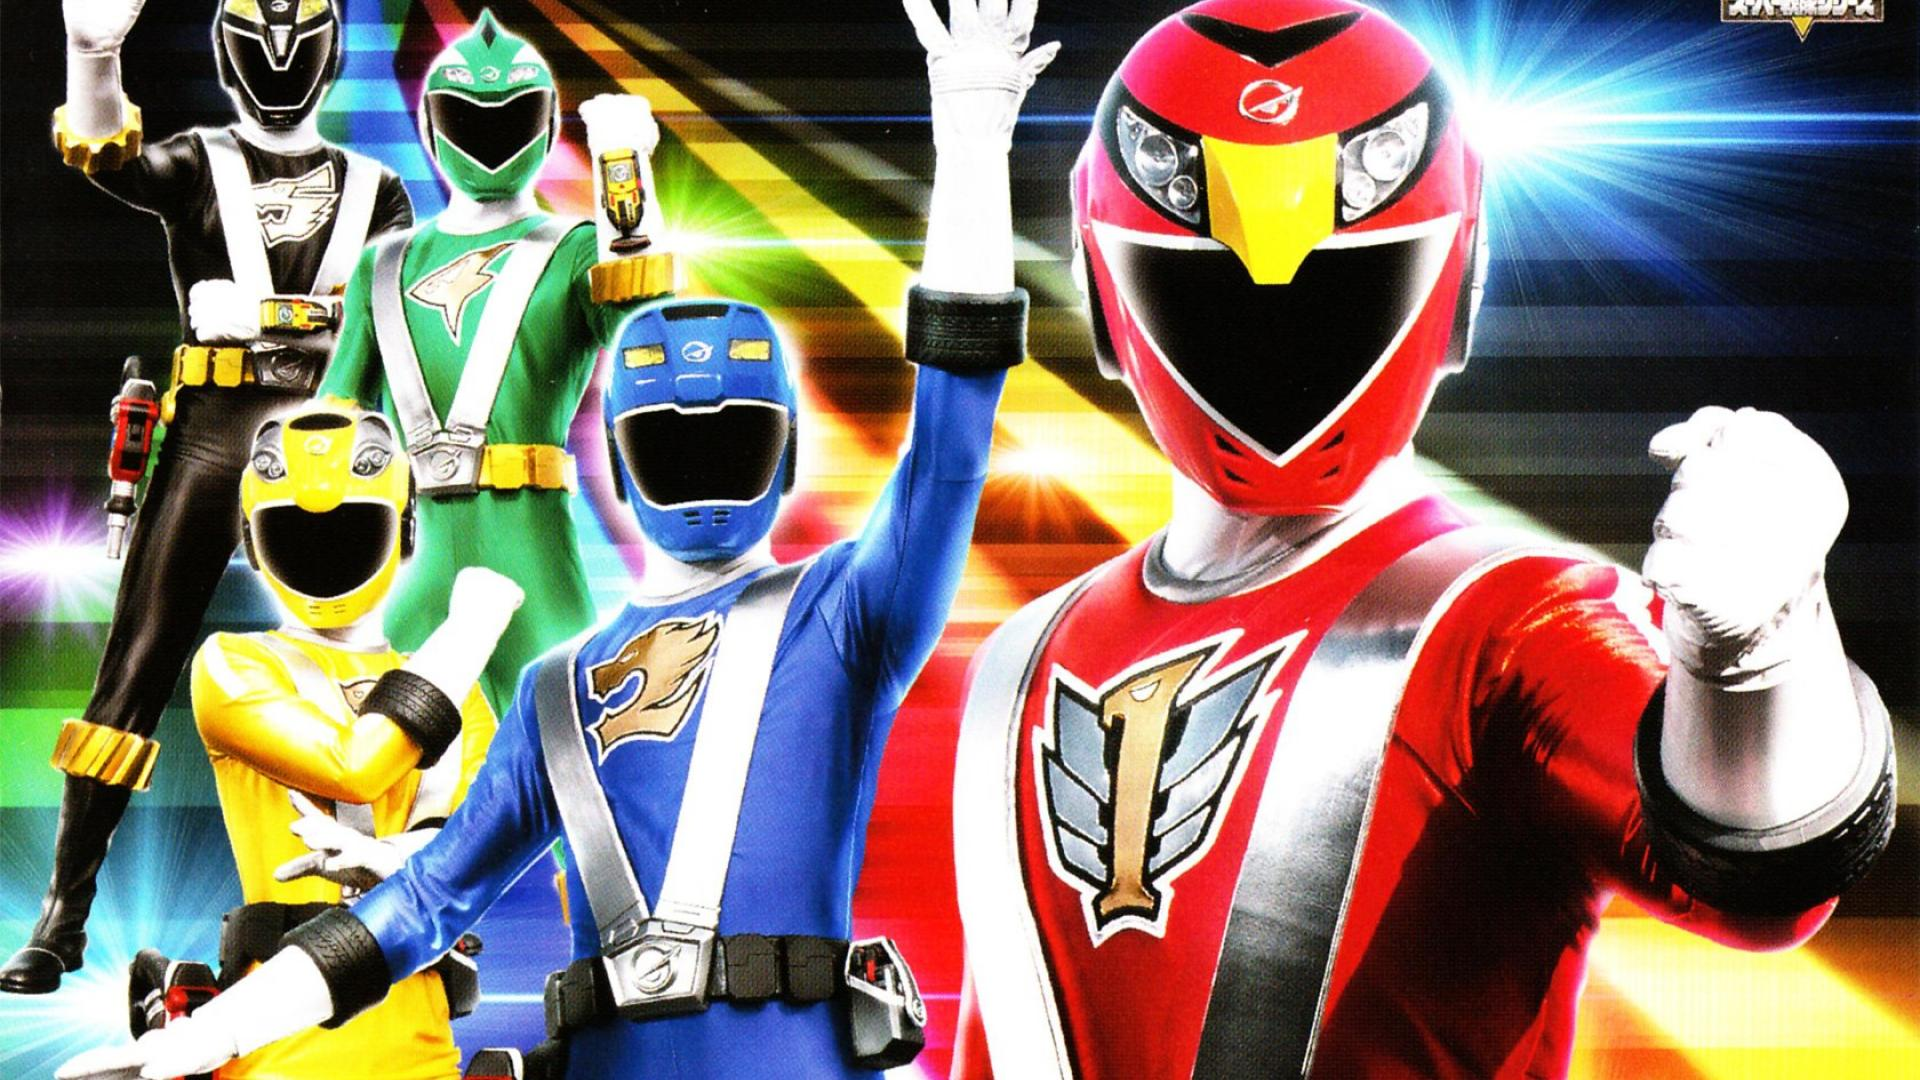 200 power ranger wallpaper - photo #35